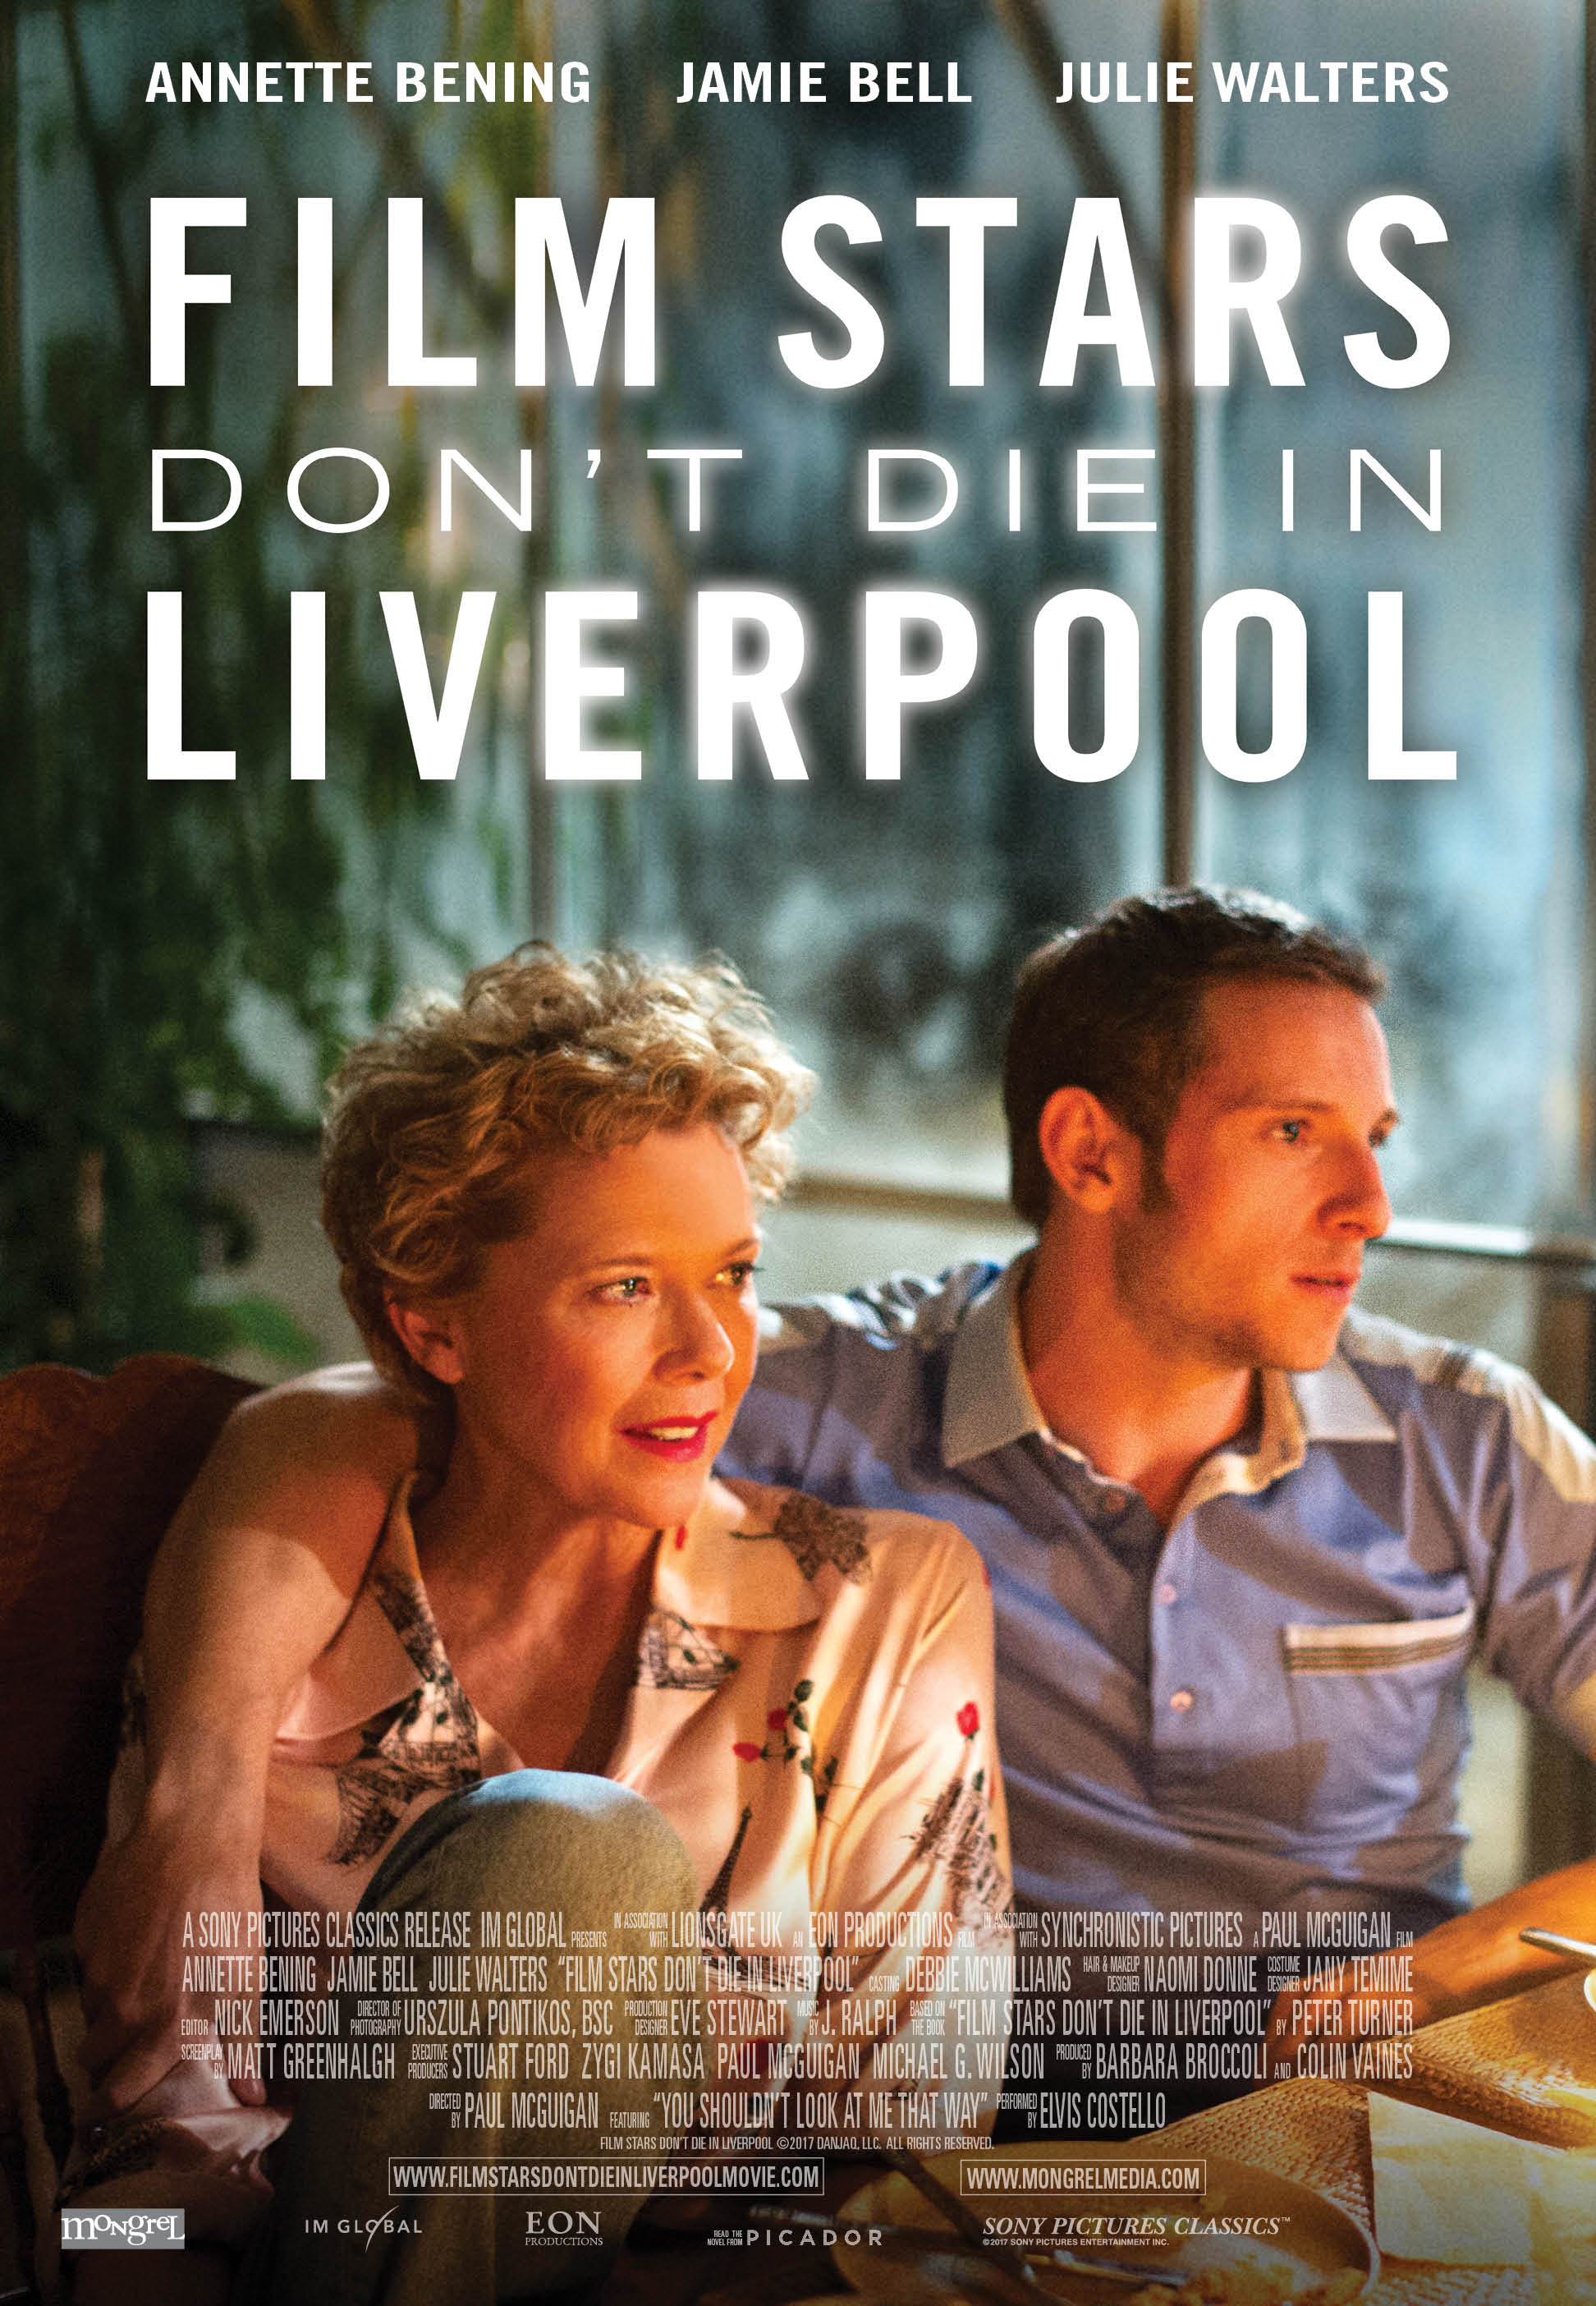 Film Stars Dont In Liverpool